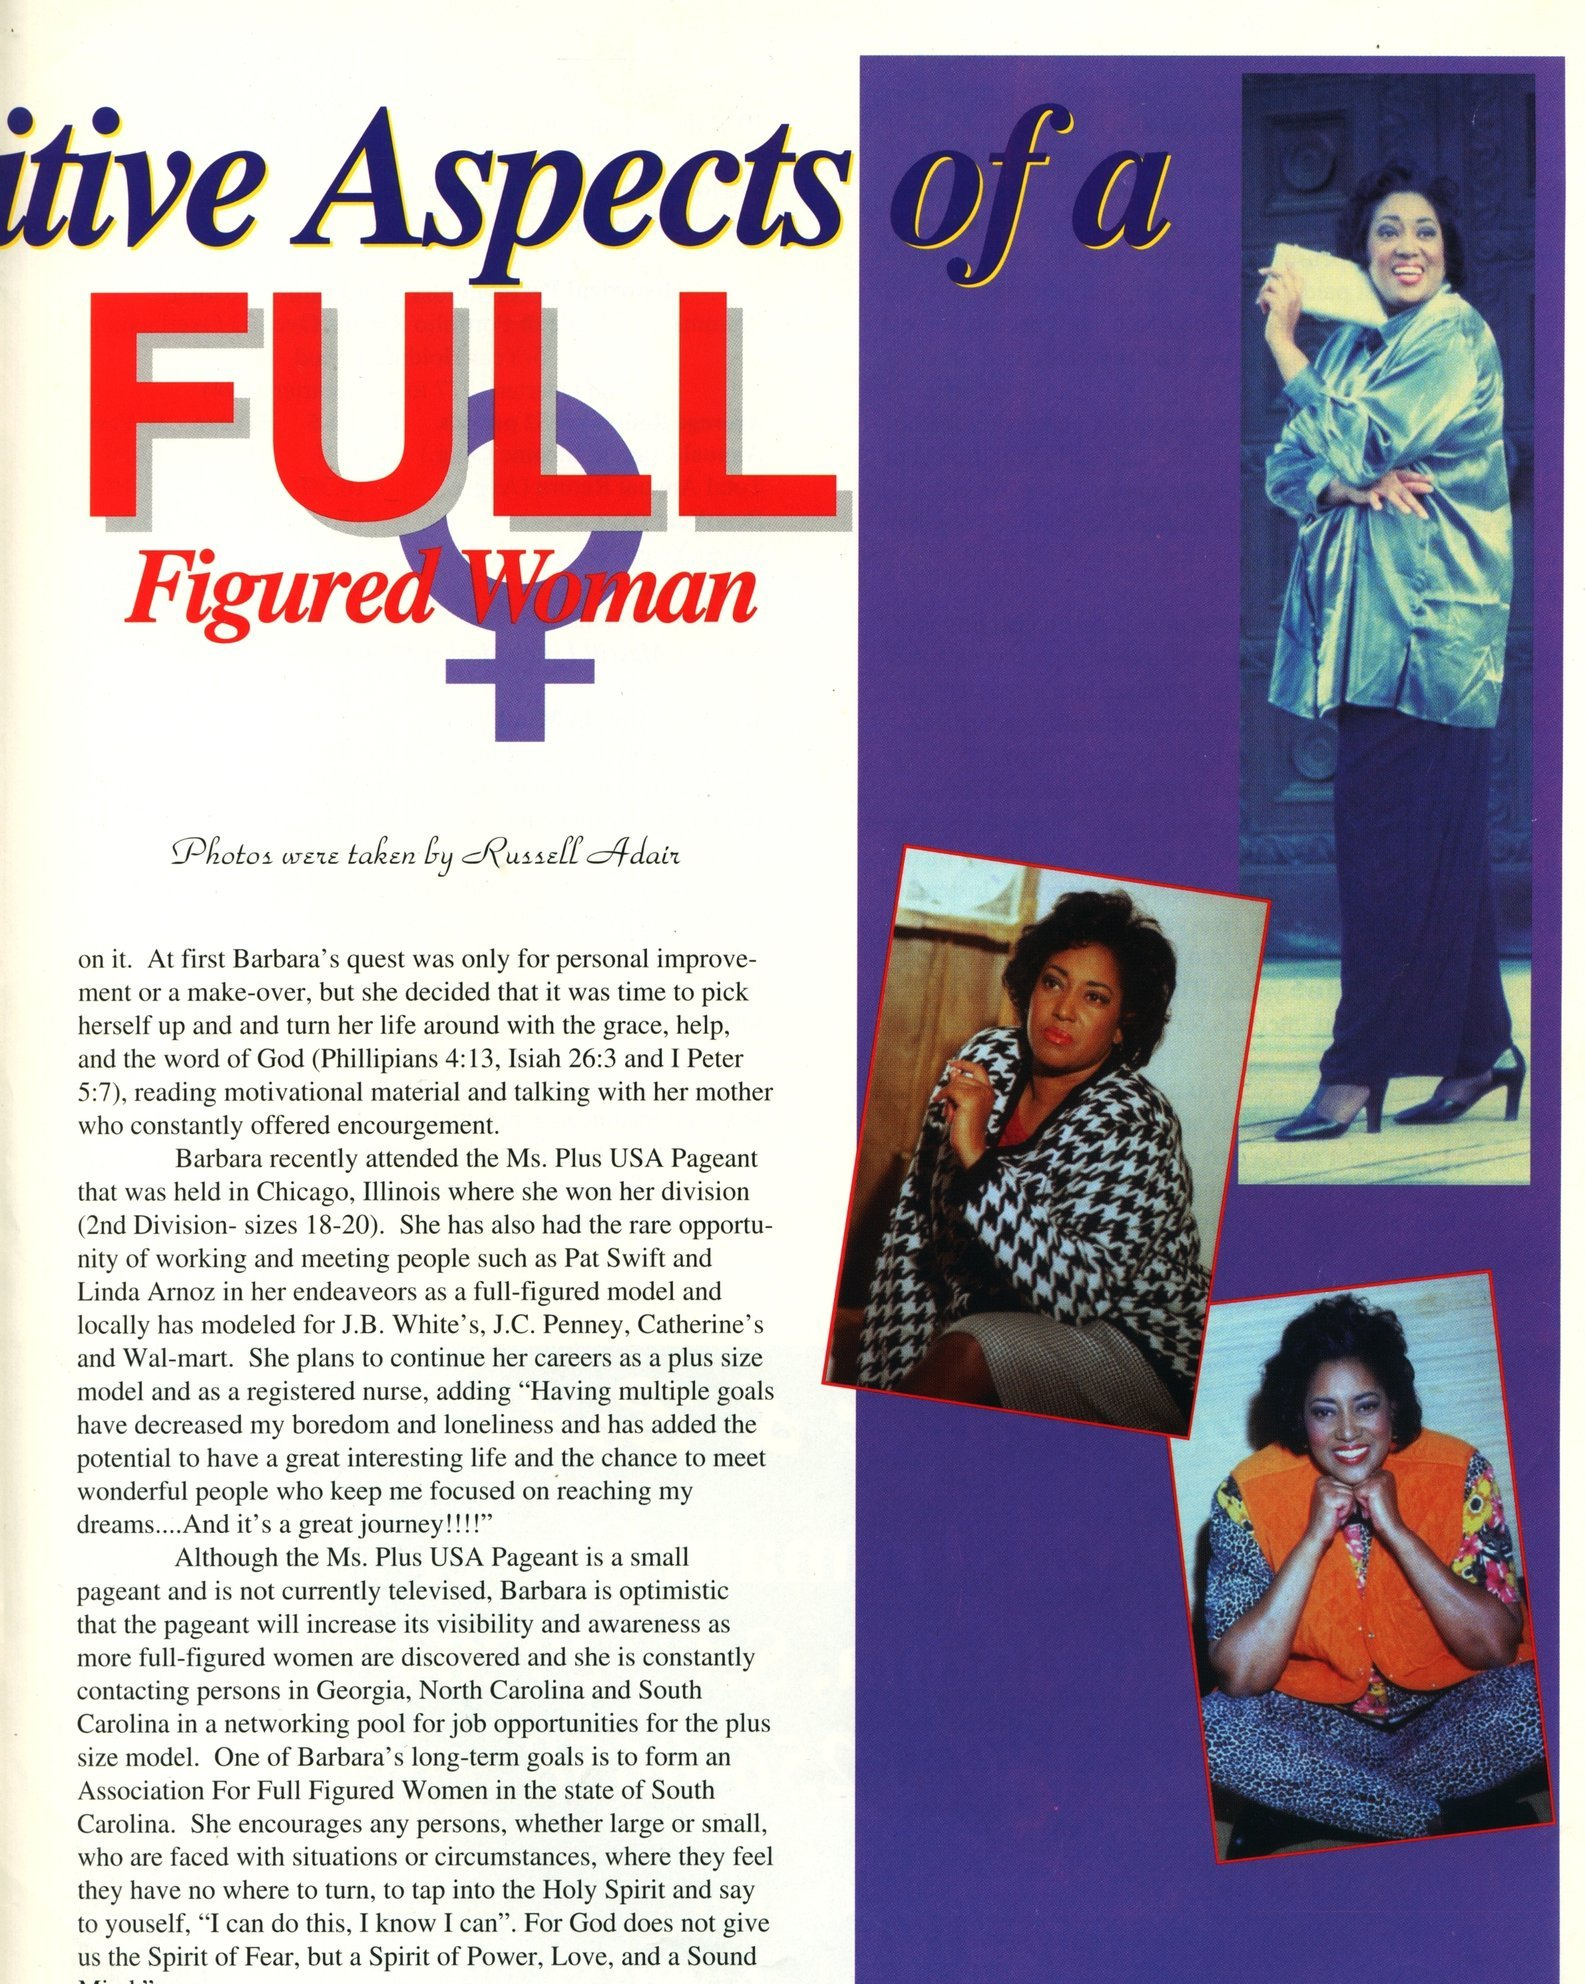 BARBARA WILLIAMS appears as a special feature in CELEBRITY magazine.